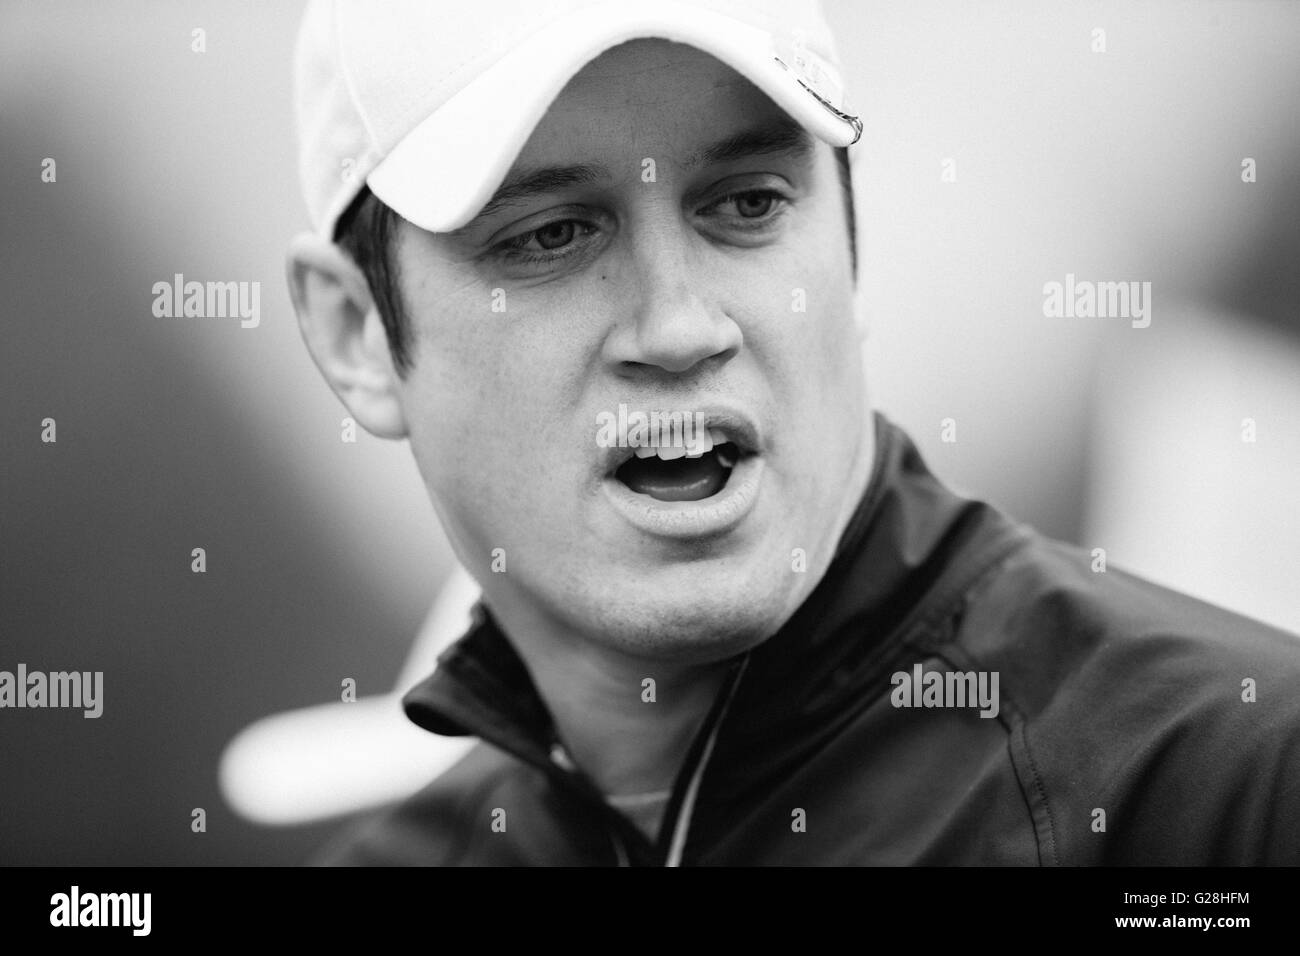 WENTWORTH, UK: May, 25, 2016 Vernon Kay competing in the BMW PGA Celebrity Pro-Am at Wentworth. - Stock Image